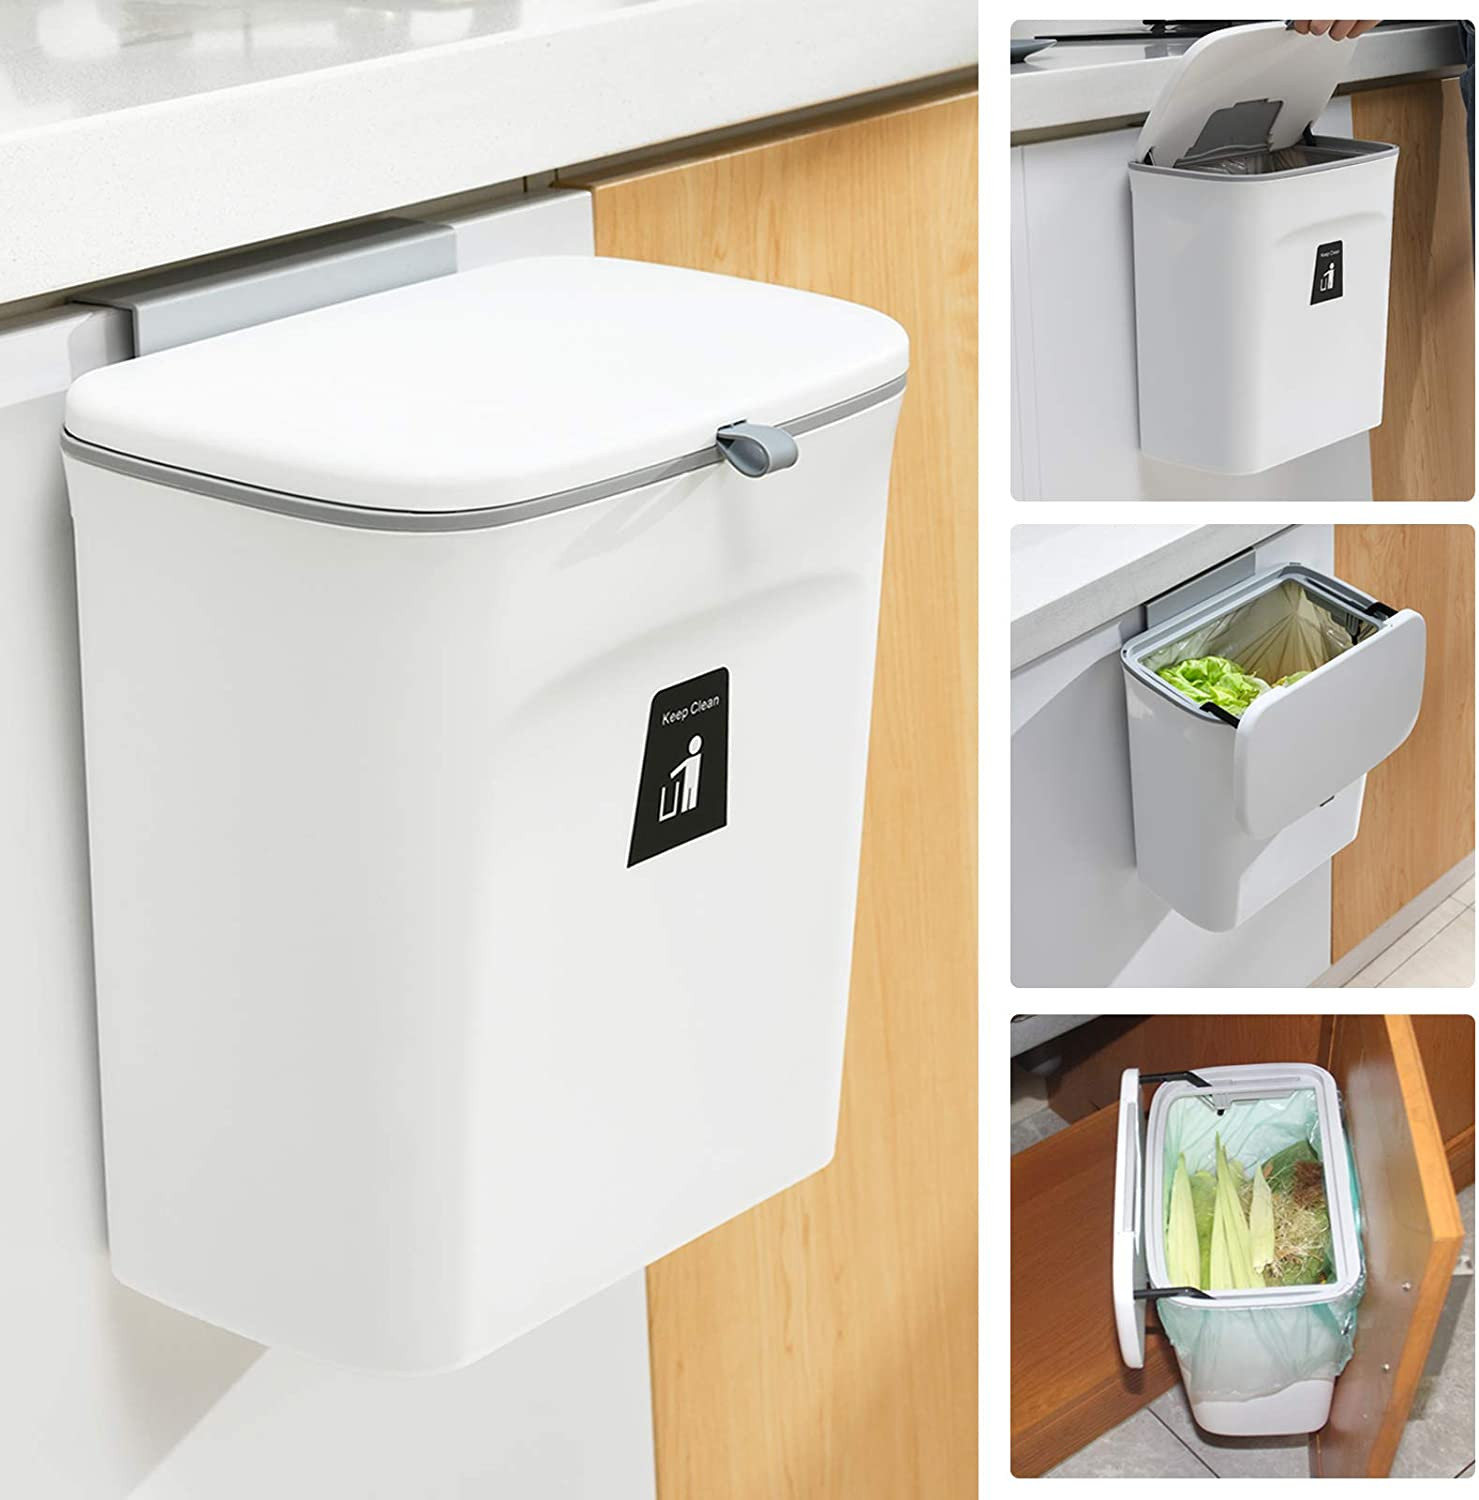 2.4 Gallon Kitchen Compost Bin for Counter Top or Under Sink, Hanging Small Trash Can with Lid for Cupboard/Bathroom/Bedroom/Office/Camping, Mountable Indoor Compost Bucket, White